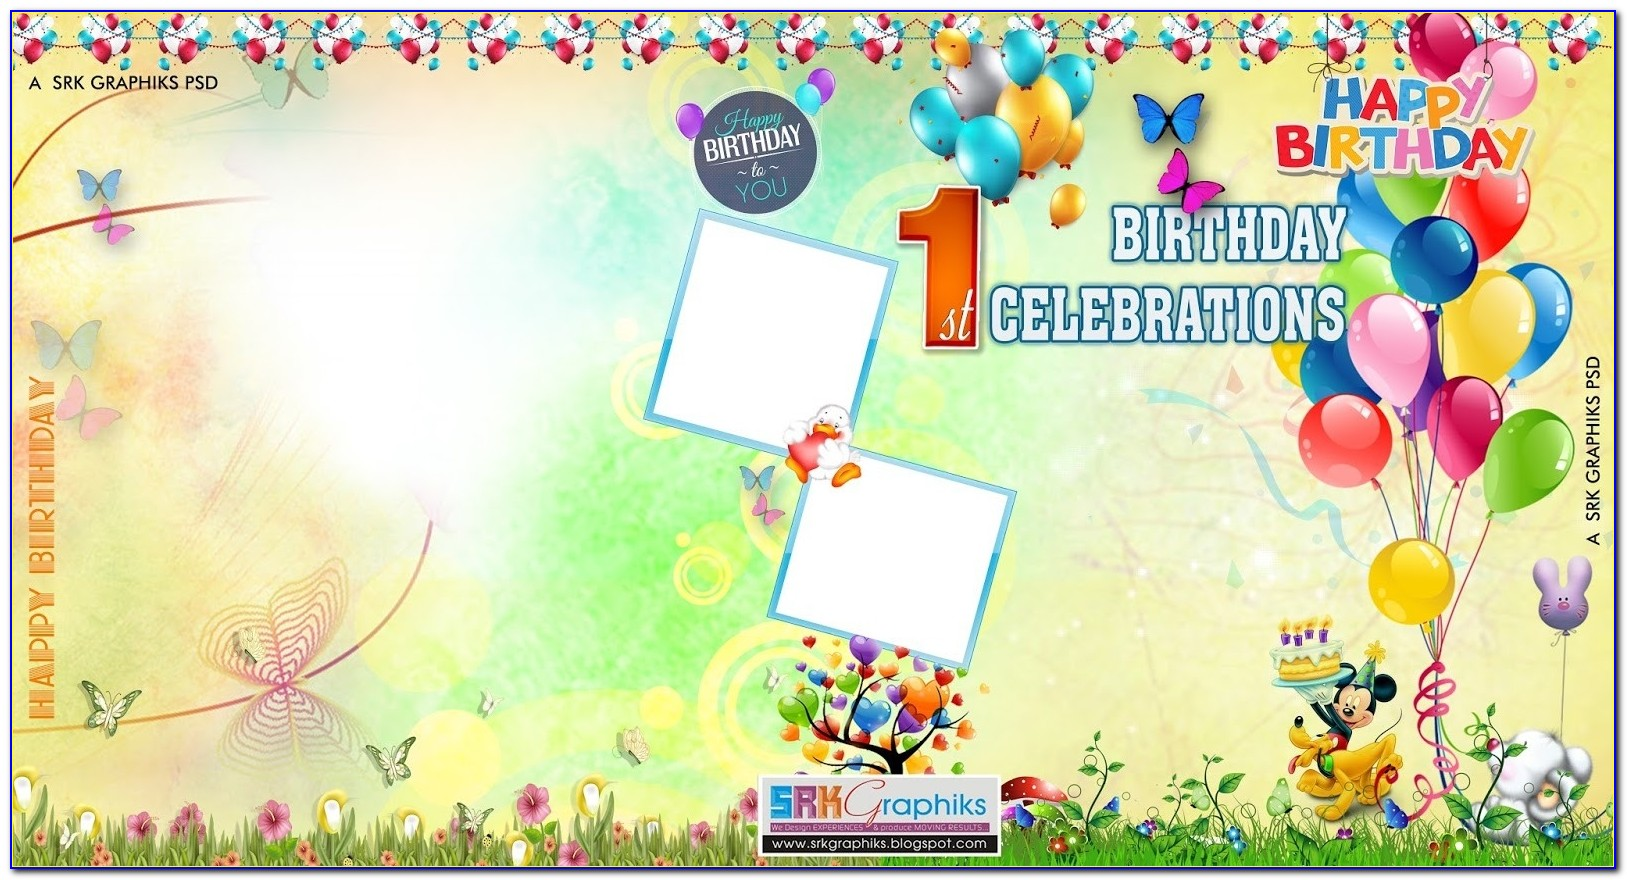 Birthday Flex Banner Design Psd Template Free Downloads Srk Graphics For Birthday Flex Banner Background Design